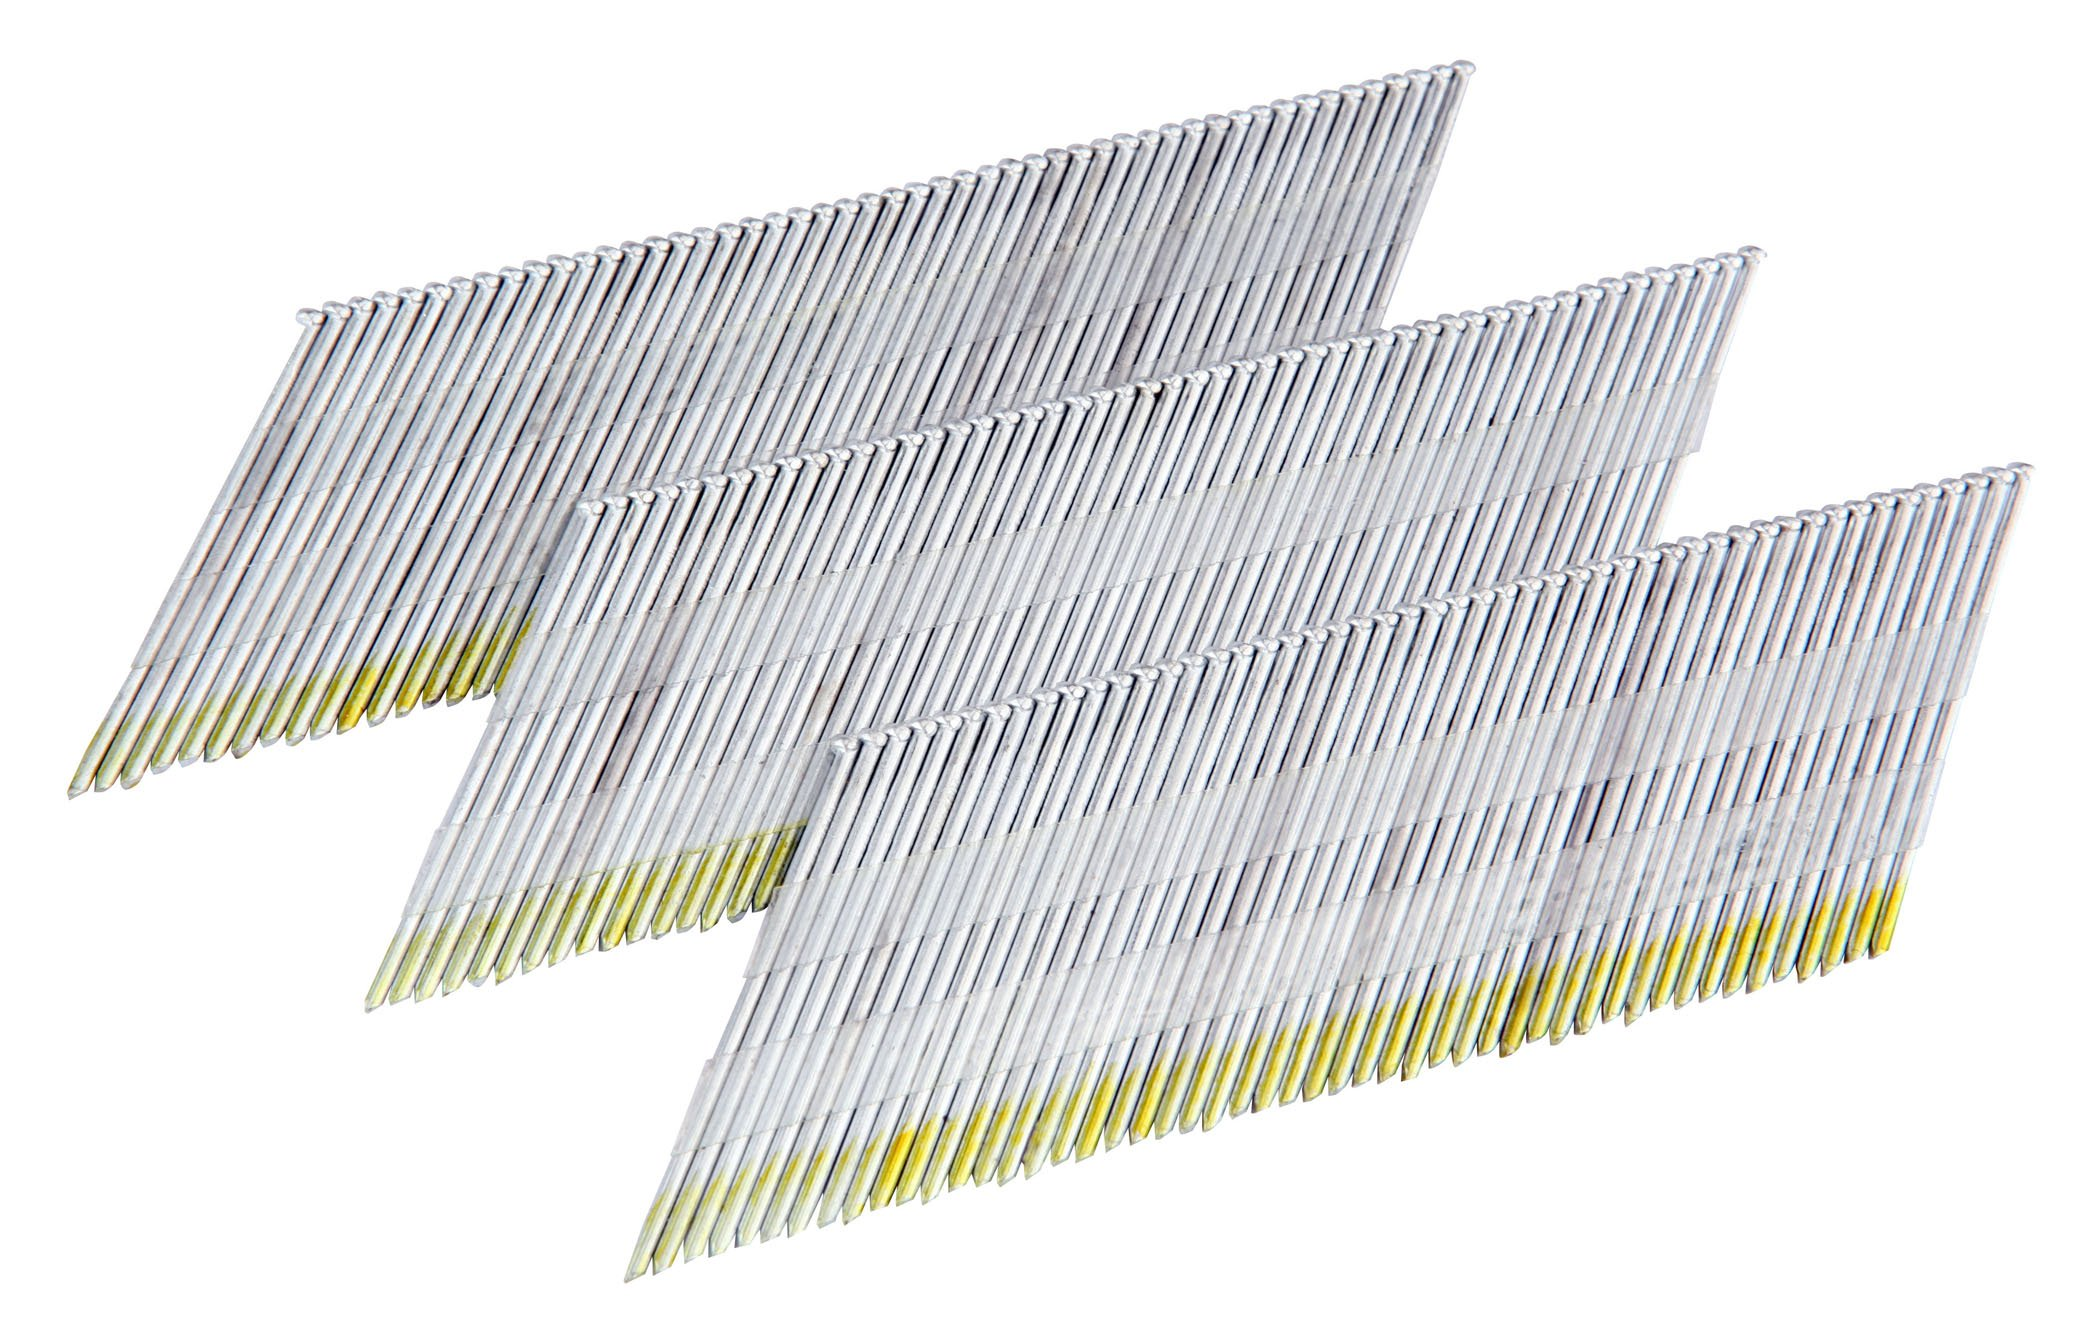 Freeman AF1534-2 2-Inch by 15 Gauge Angle Finish Nail, 1000 Per Box